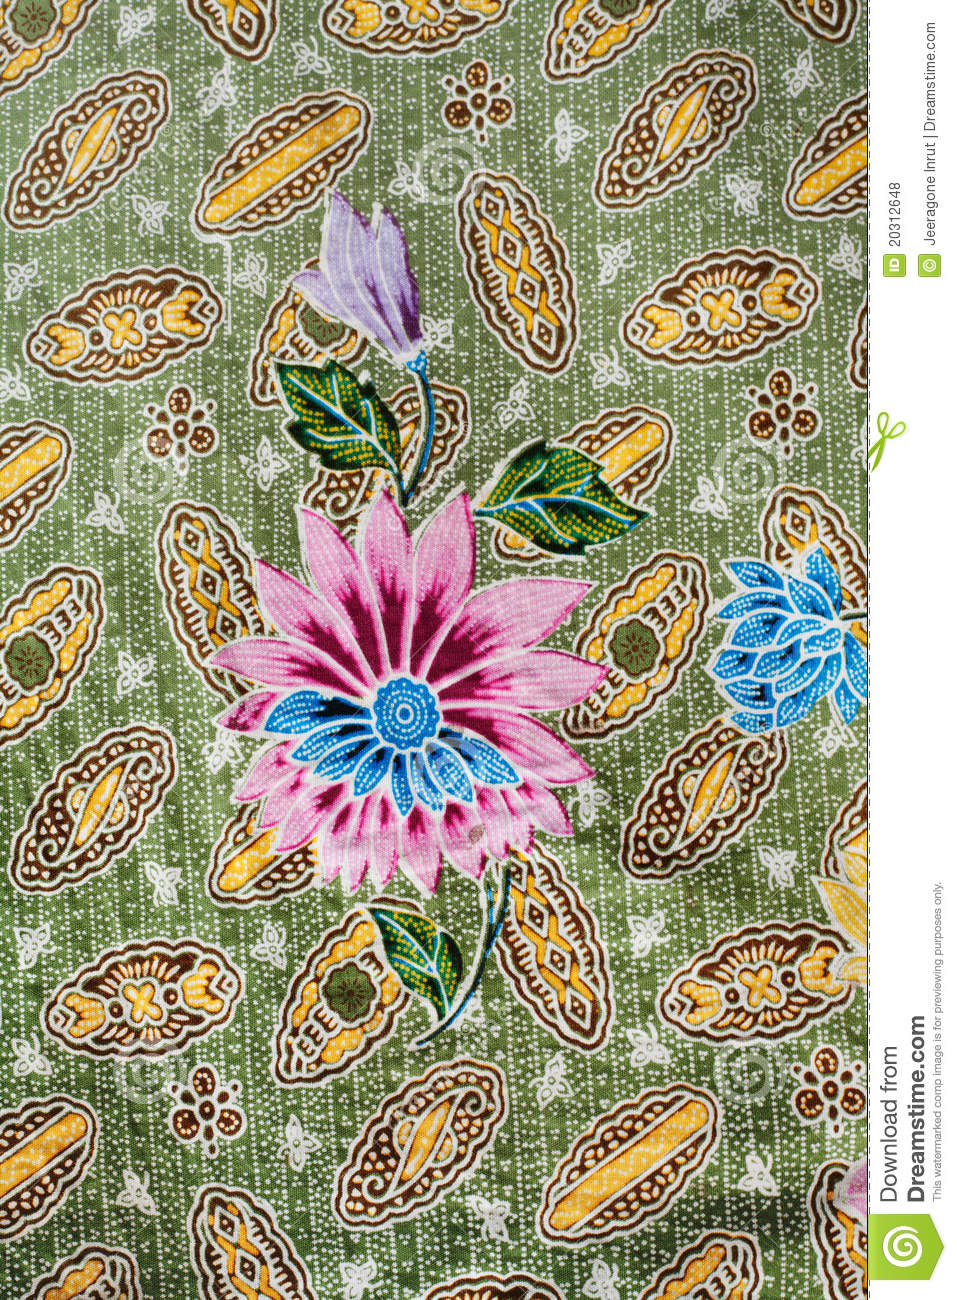 Batik Design In Thailand Royalty Free Stock Photos